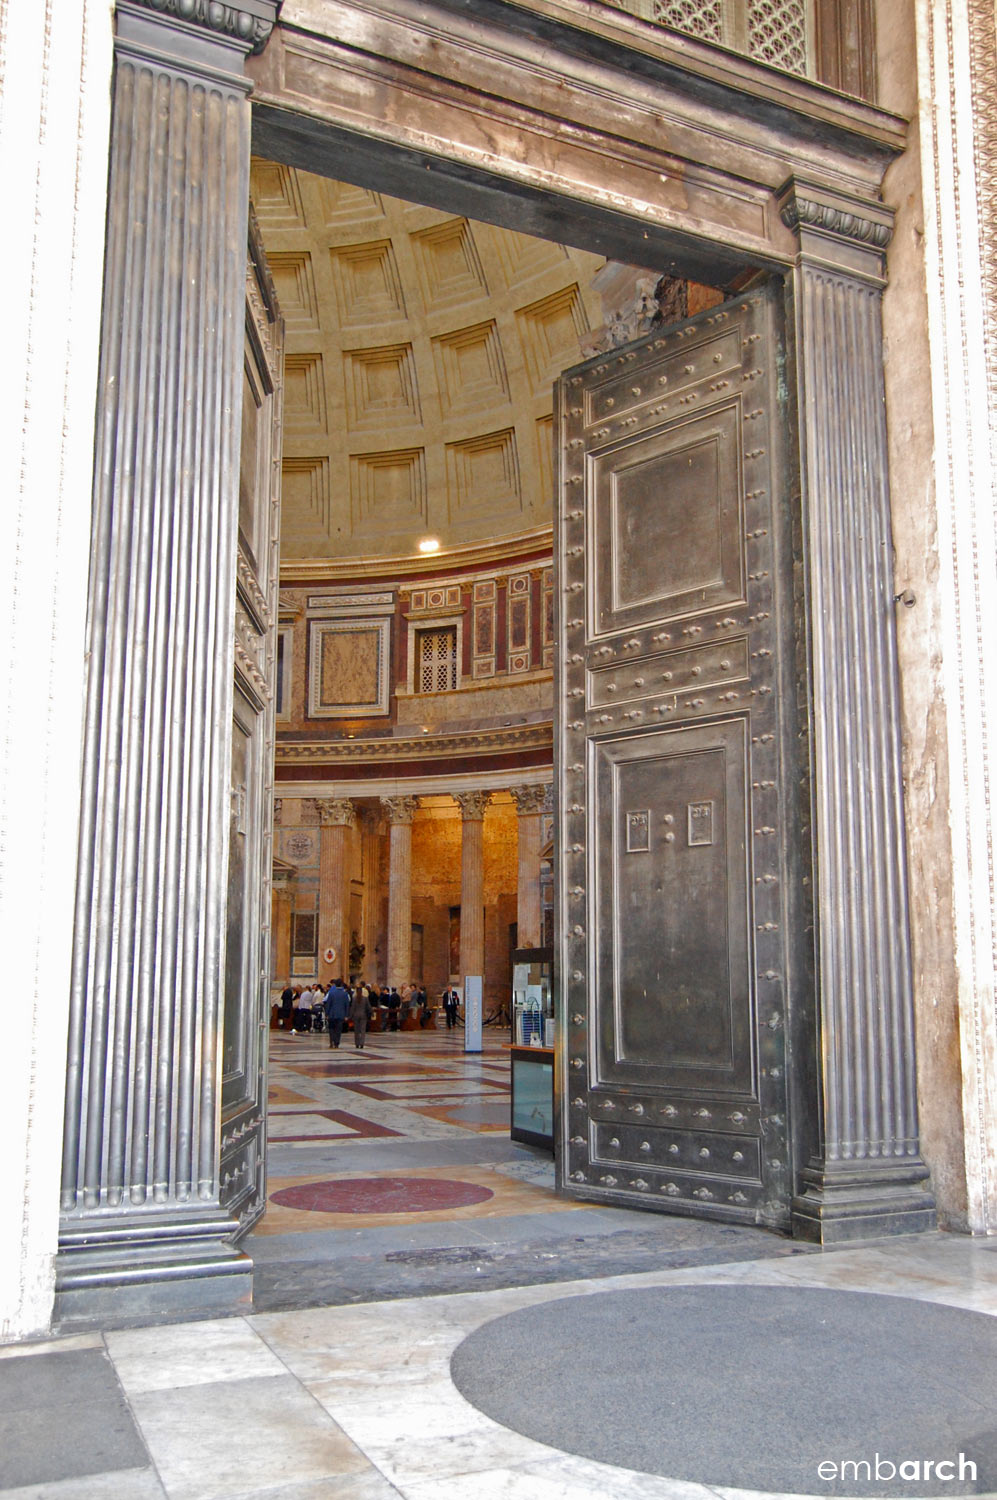 Pantheon - entry doorway